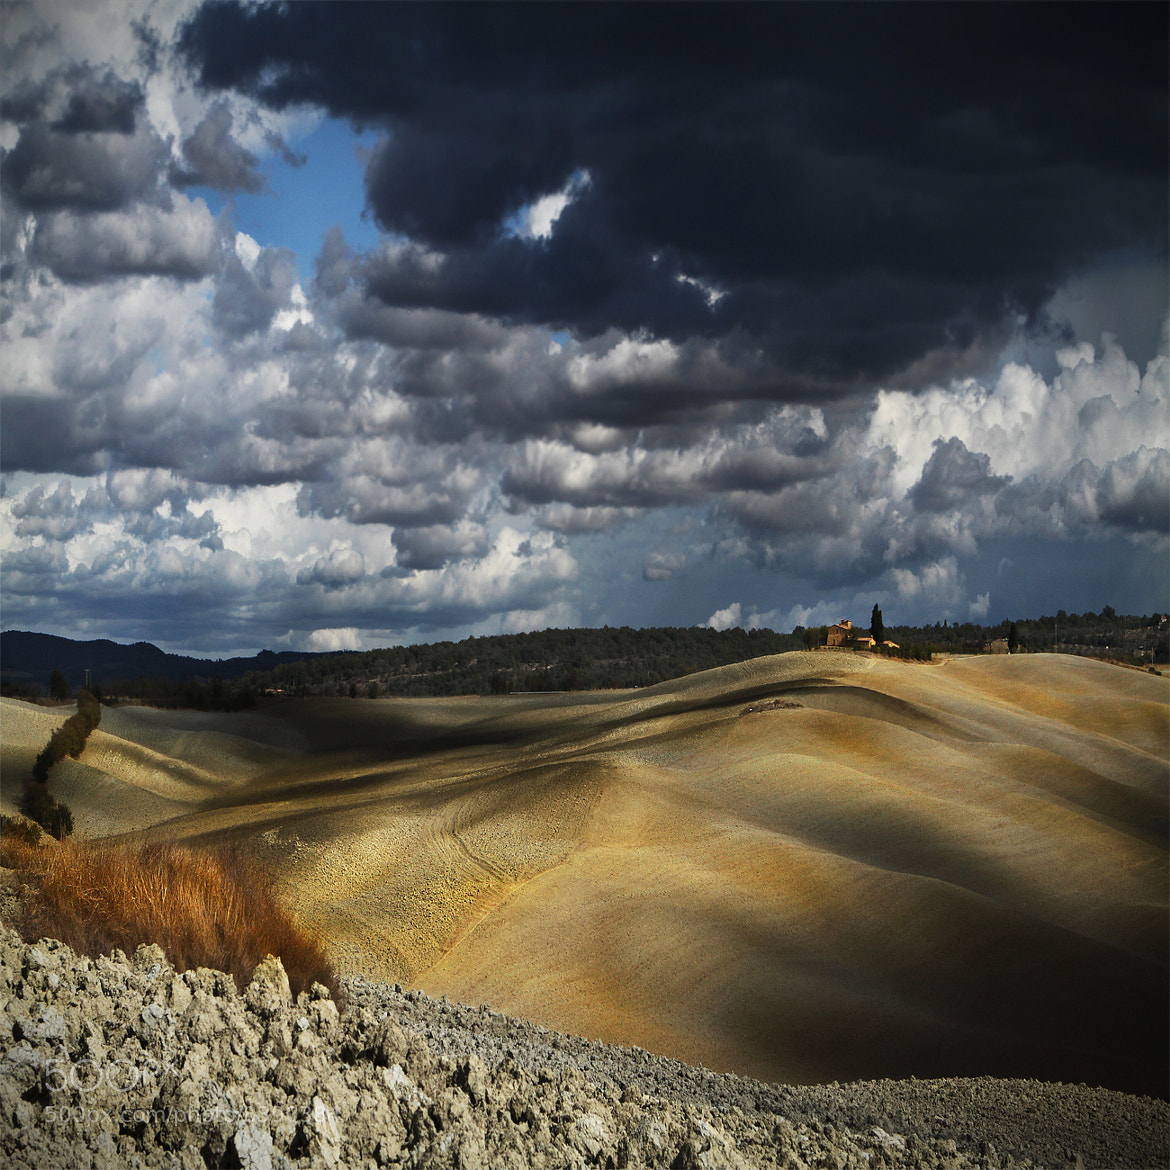 Photograph A turbulent day in Tuscany .. by Edmondo Senatore on 500px